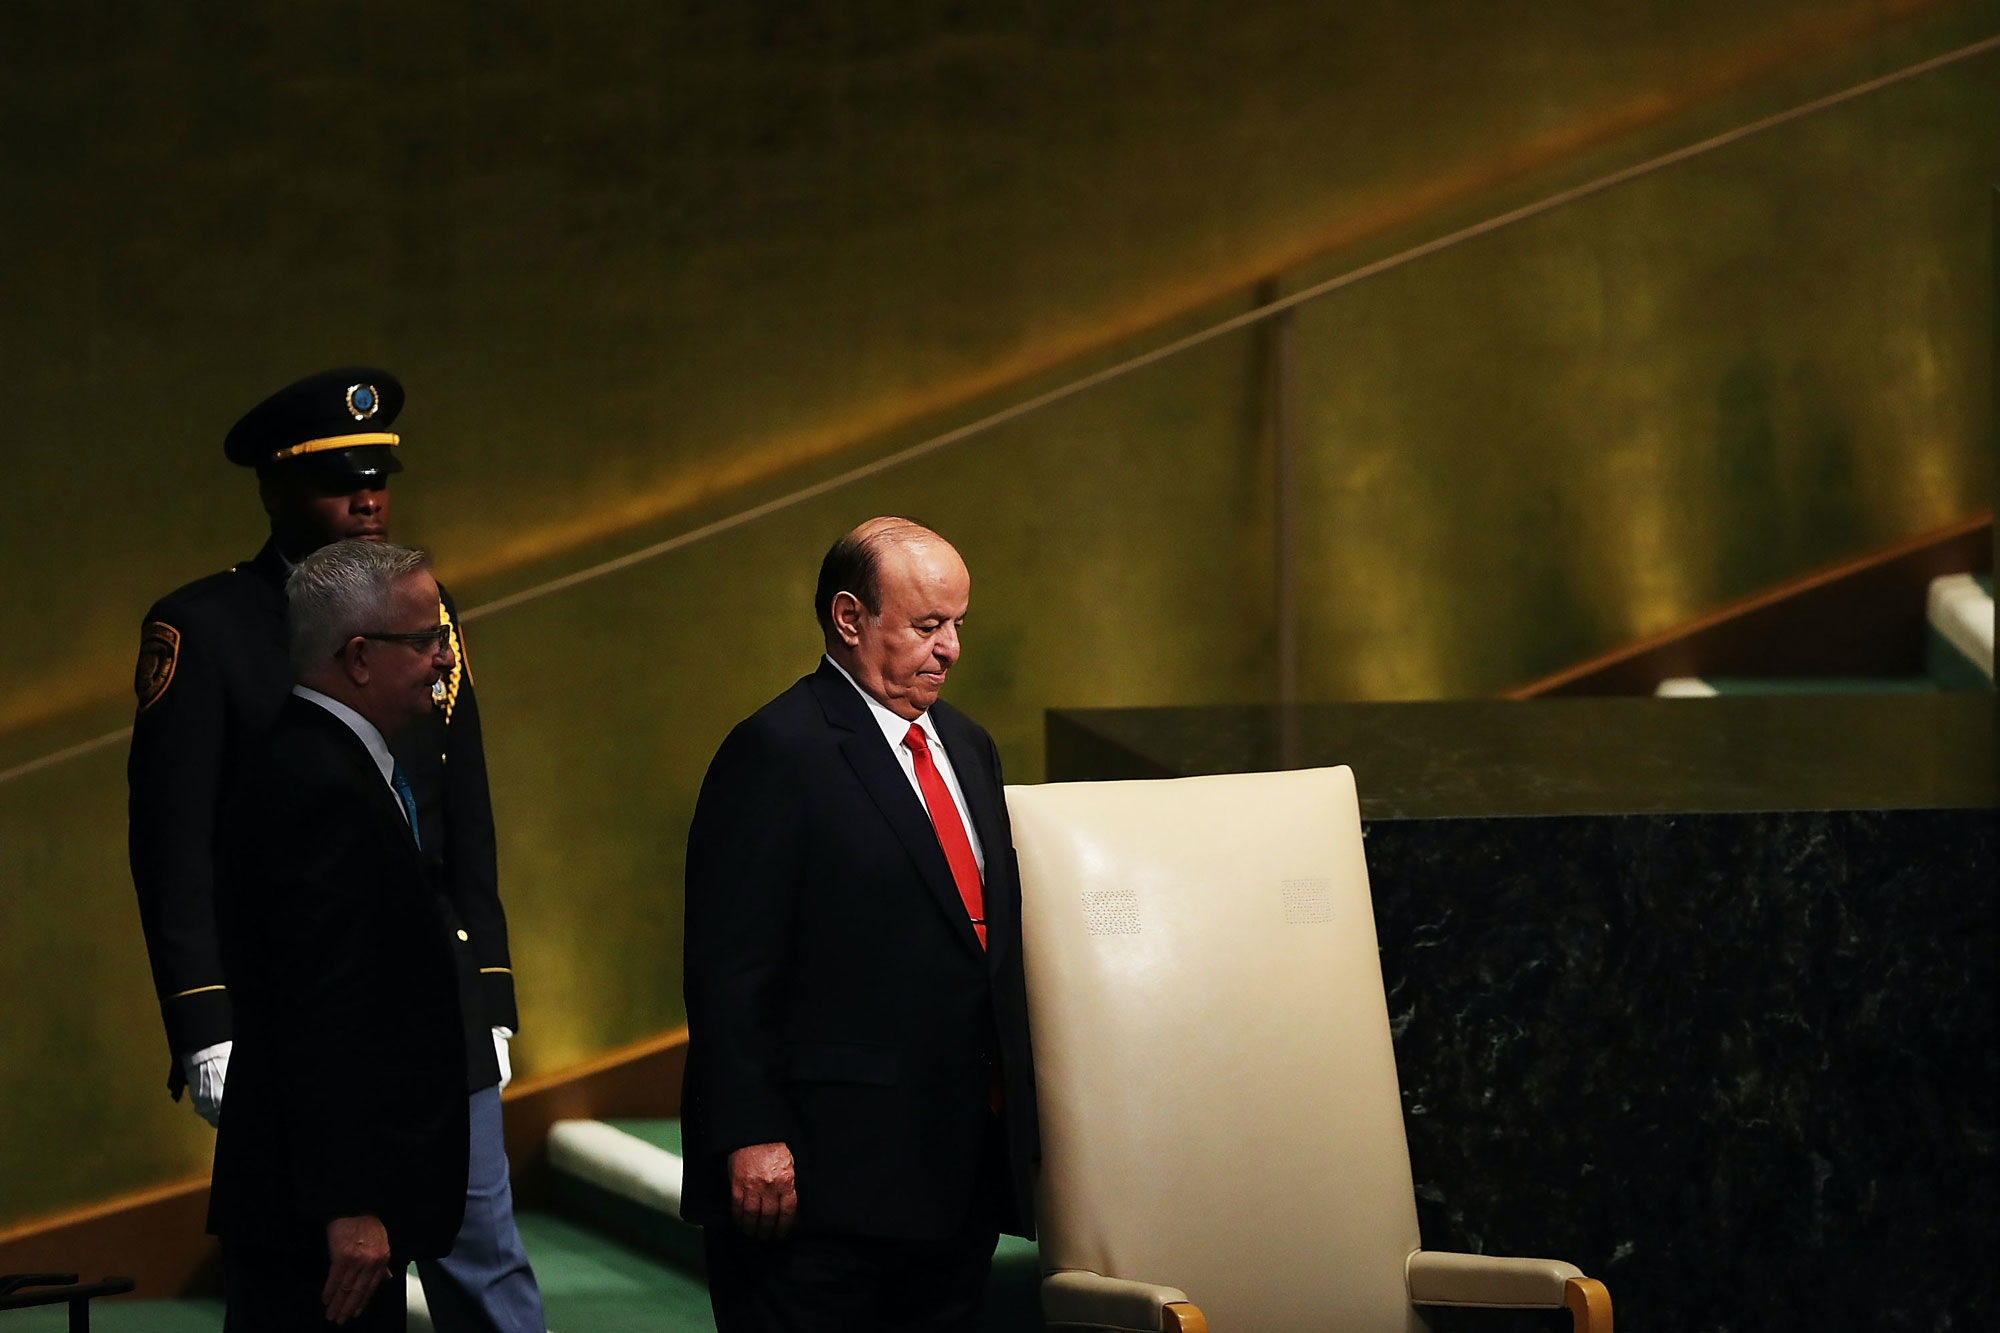 NEW YORK, NY - SEPTEMBER 21:  Yemen President Abd-Rabbu Mansour Hadi prepares to speak to world leaders at the 72nd United Nations (UN) General Assembly at UN headquarters on September 21, 2017 in New York City. Topics to be discussed at this year's gathering include Iran, North Korea and global warming.  (Photo by Spencer Platt/Getty Images)